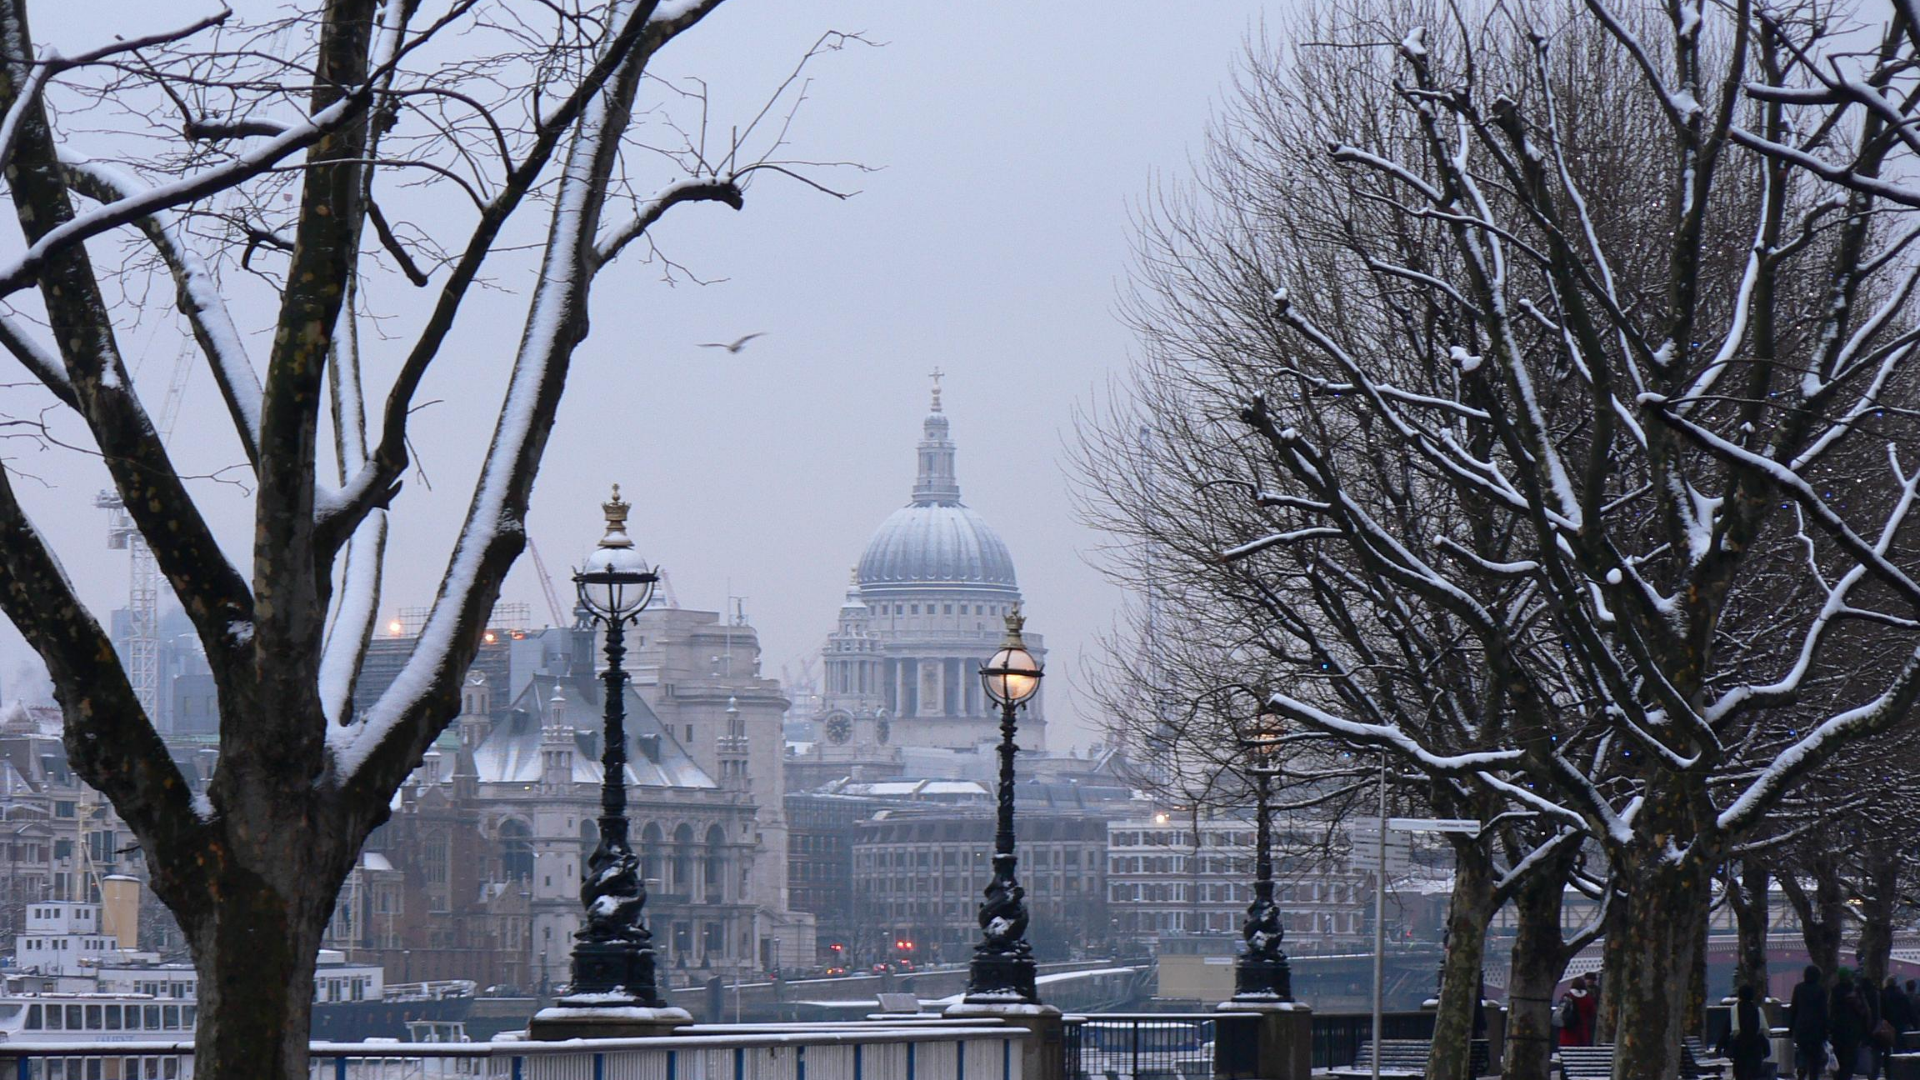 London on a snowy day